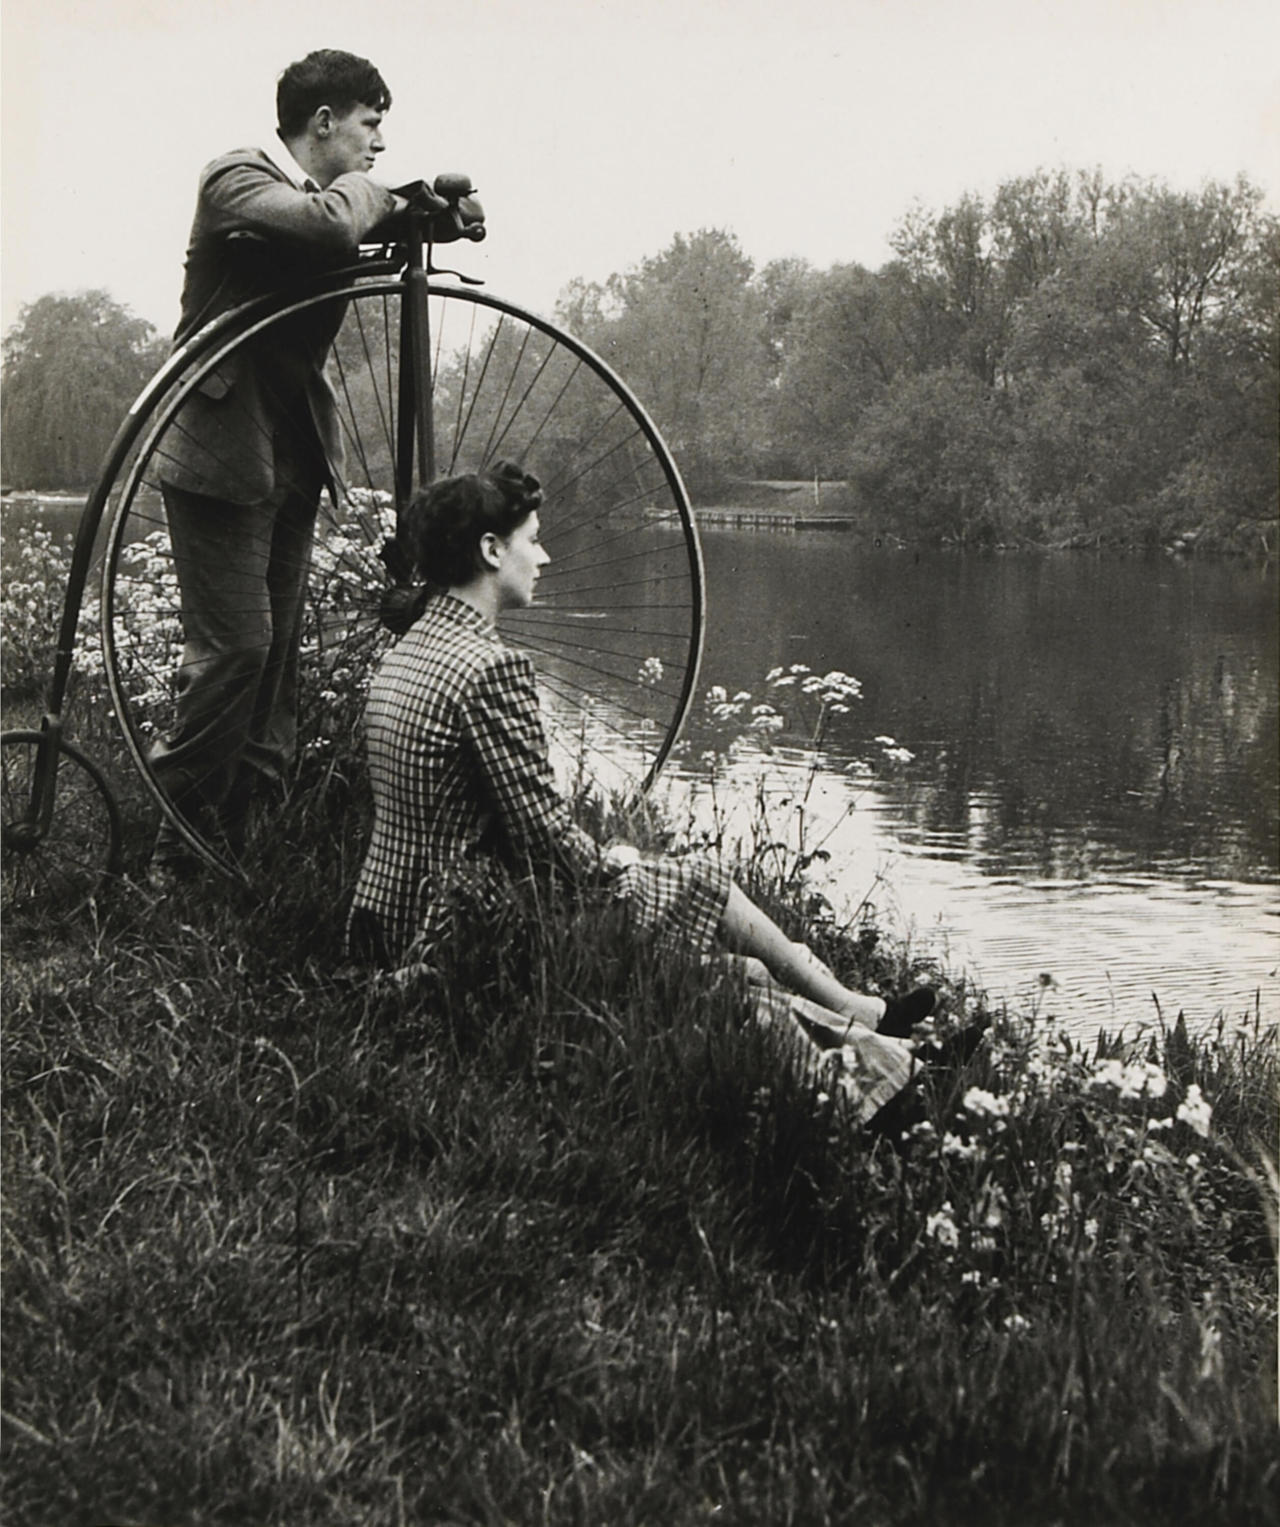 mondonoir:  Bill Brandt, Penny-farthing for their thoughts, from A Day on the River, 1941